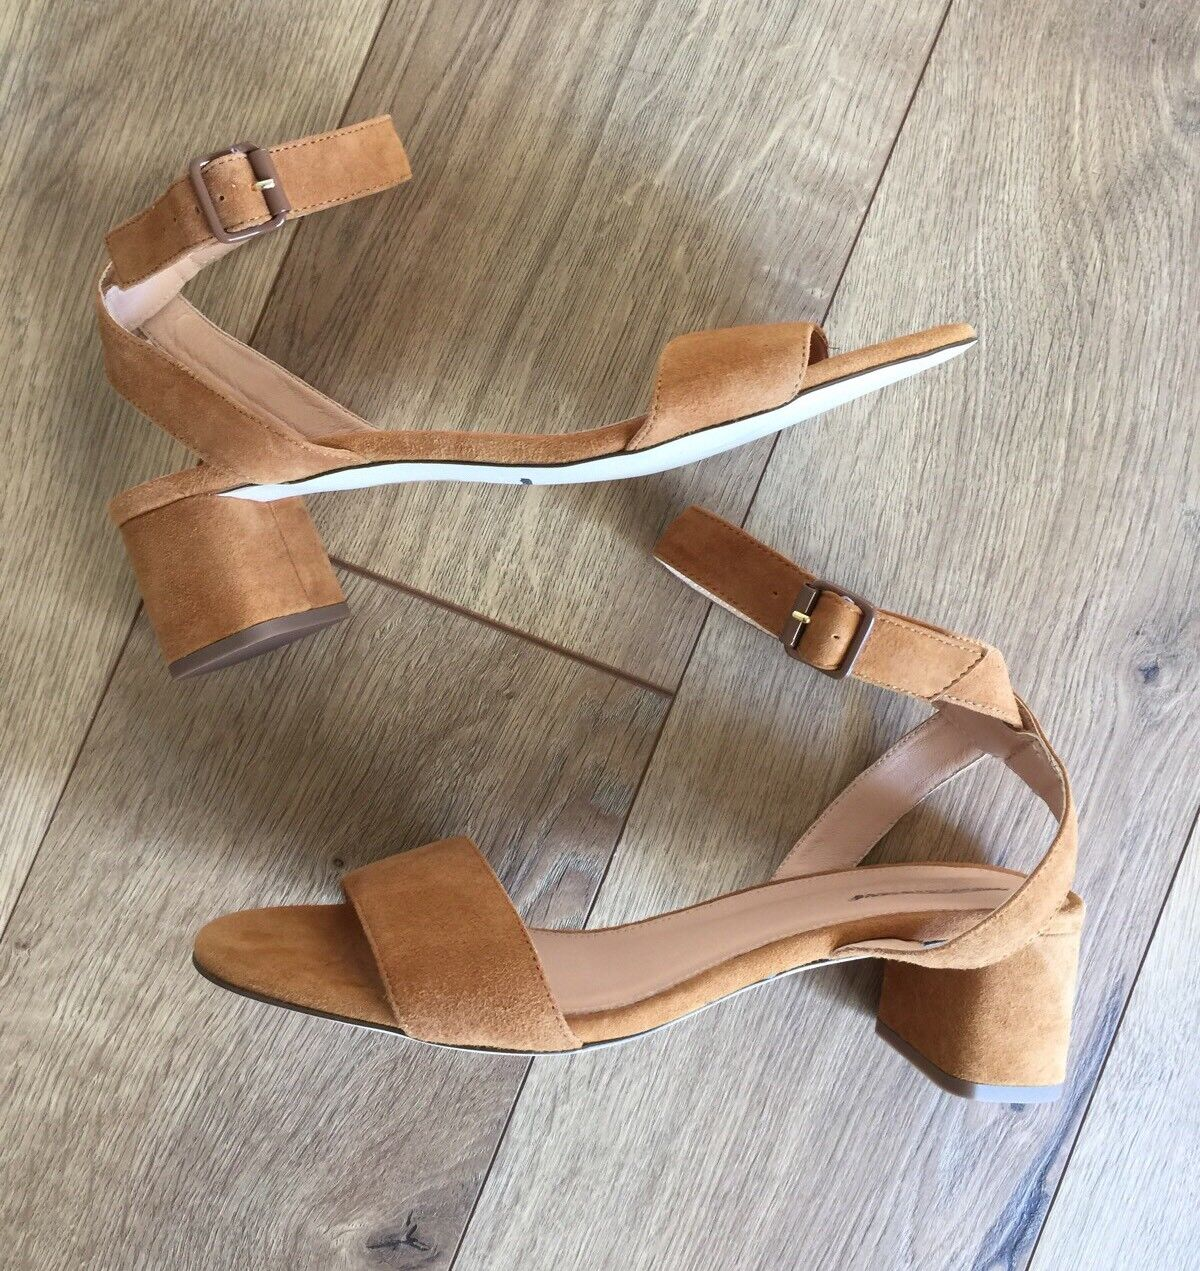 JCrew  158 Lottie Suede Sandals Sz 6.5 Roasted Cider Brown Heels shoes G4164 NEW